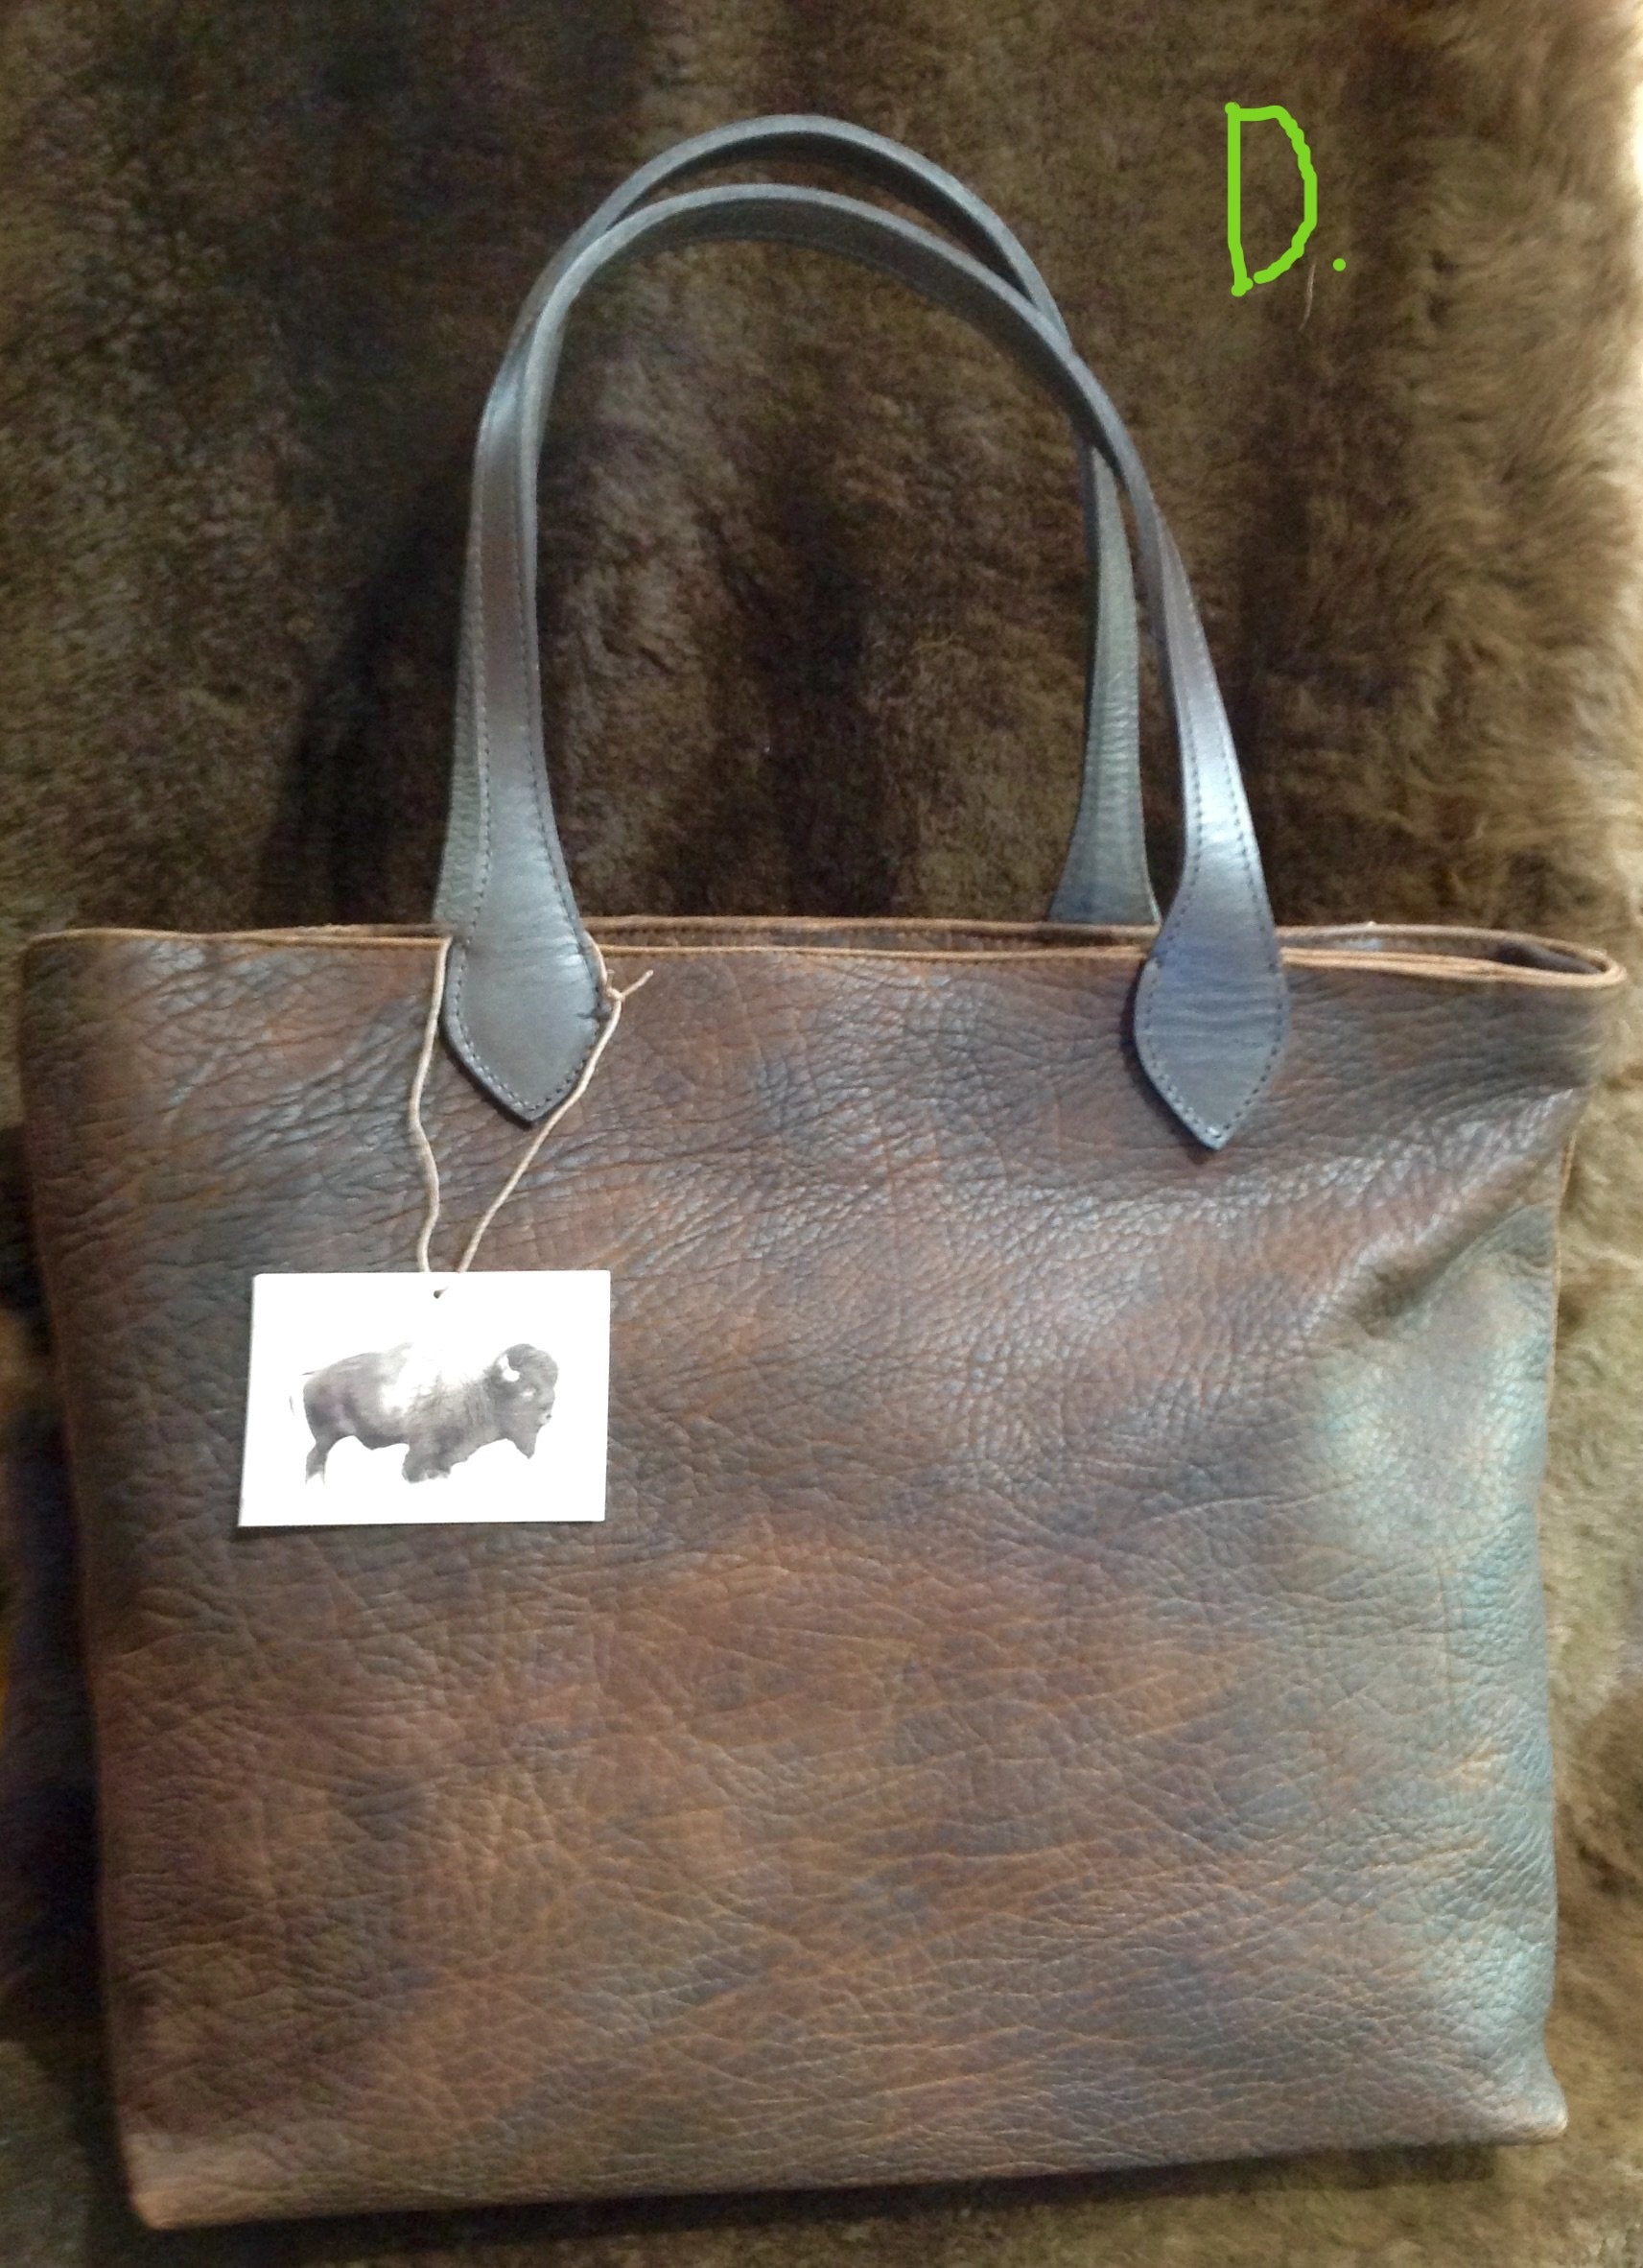 Loma Vista American Bison Leather Large Cibolo Tote Bag / Purse